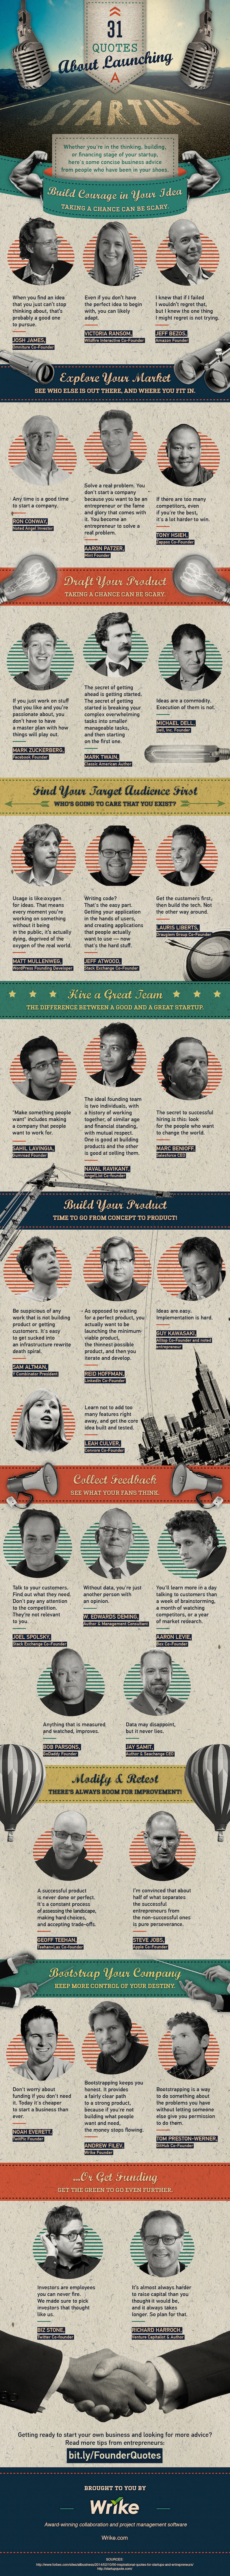 31-quotes-on-how-to-launch-a-startup-infographic